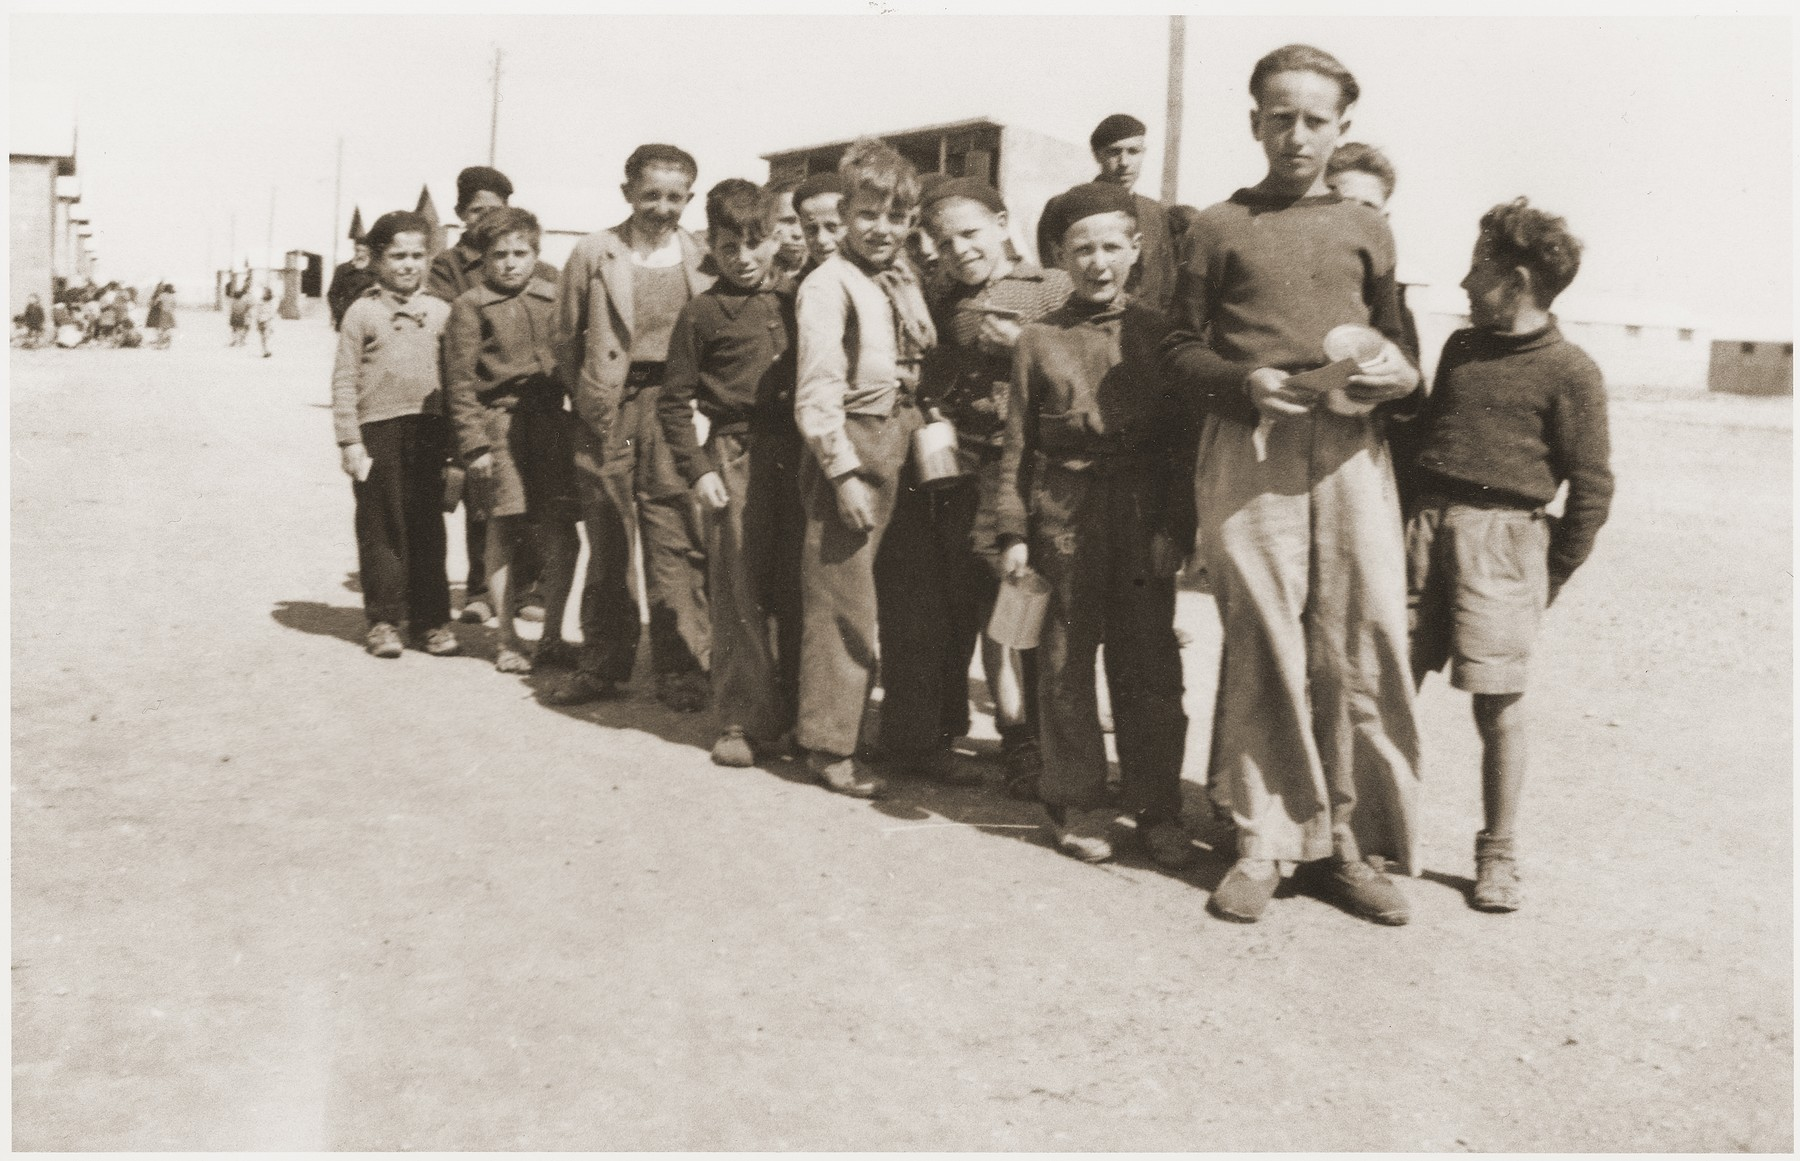 Children in the Rivesaltes transit camp wait for food distribution at the Secours Suisse building.